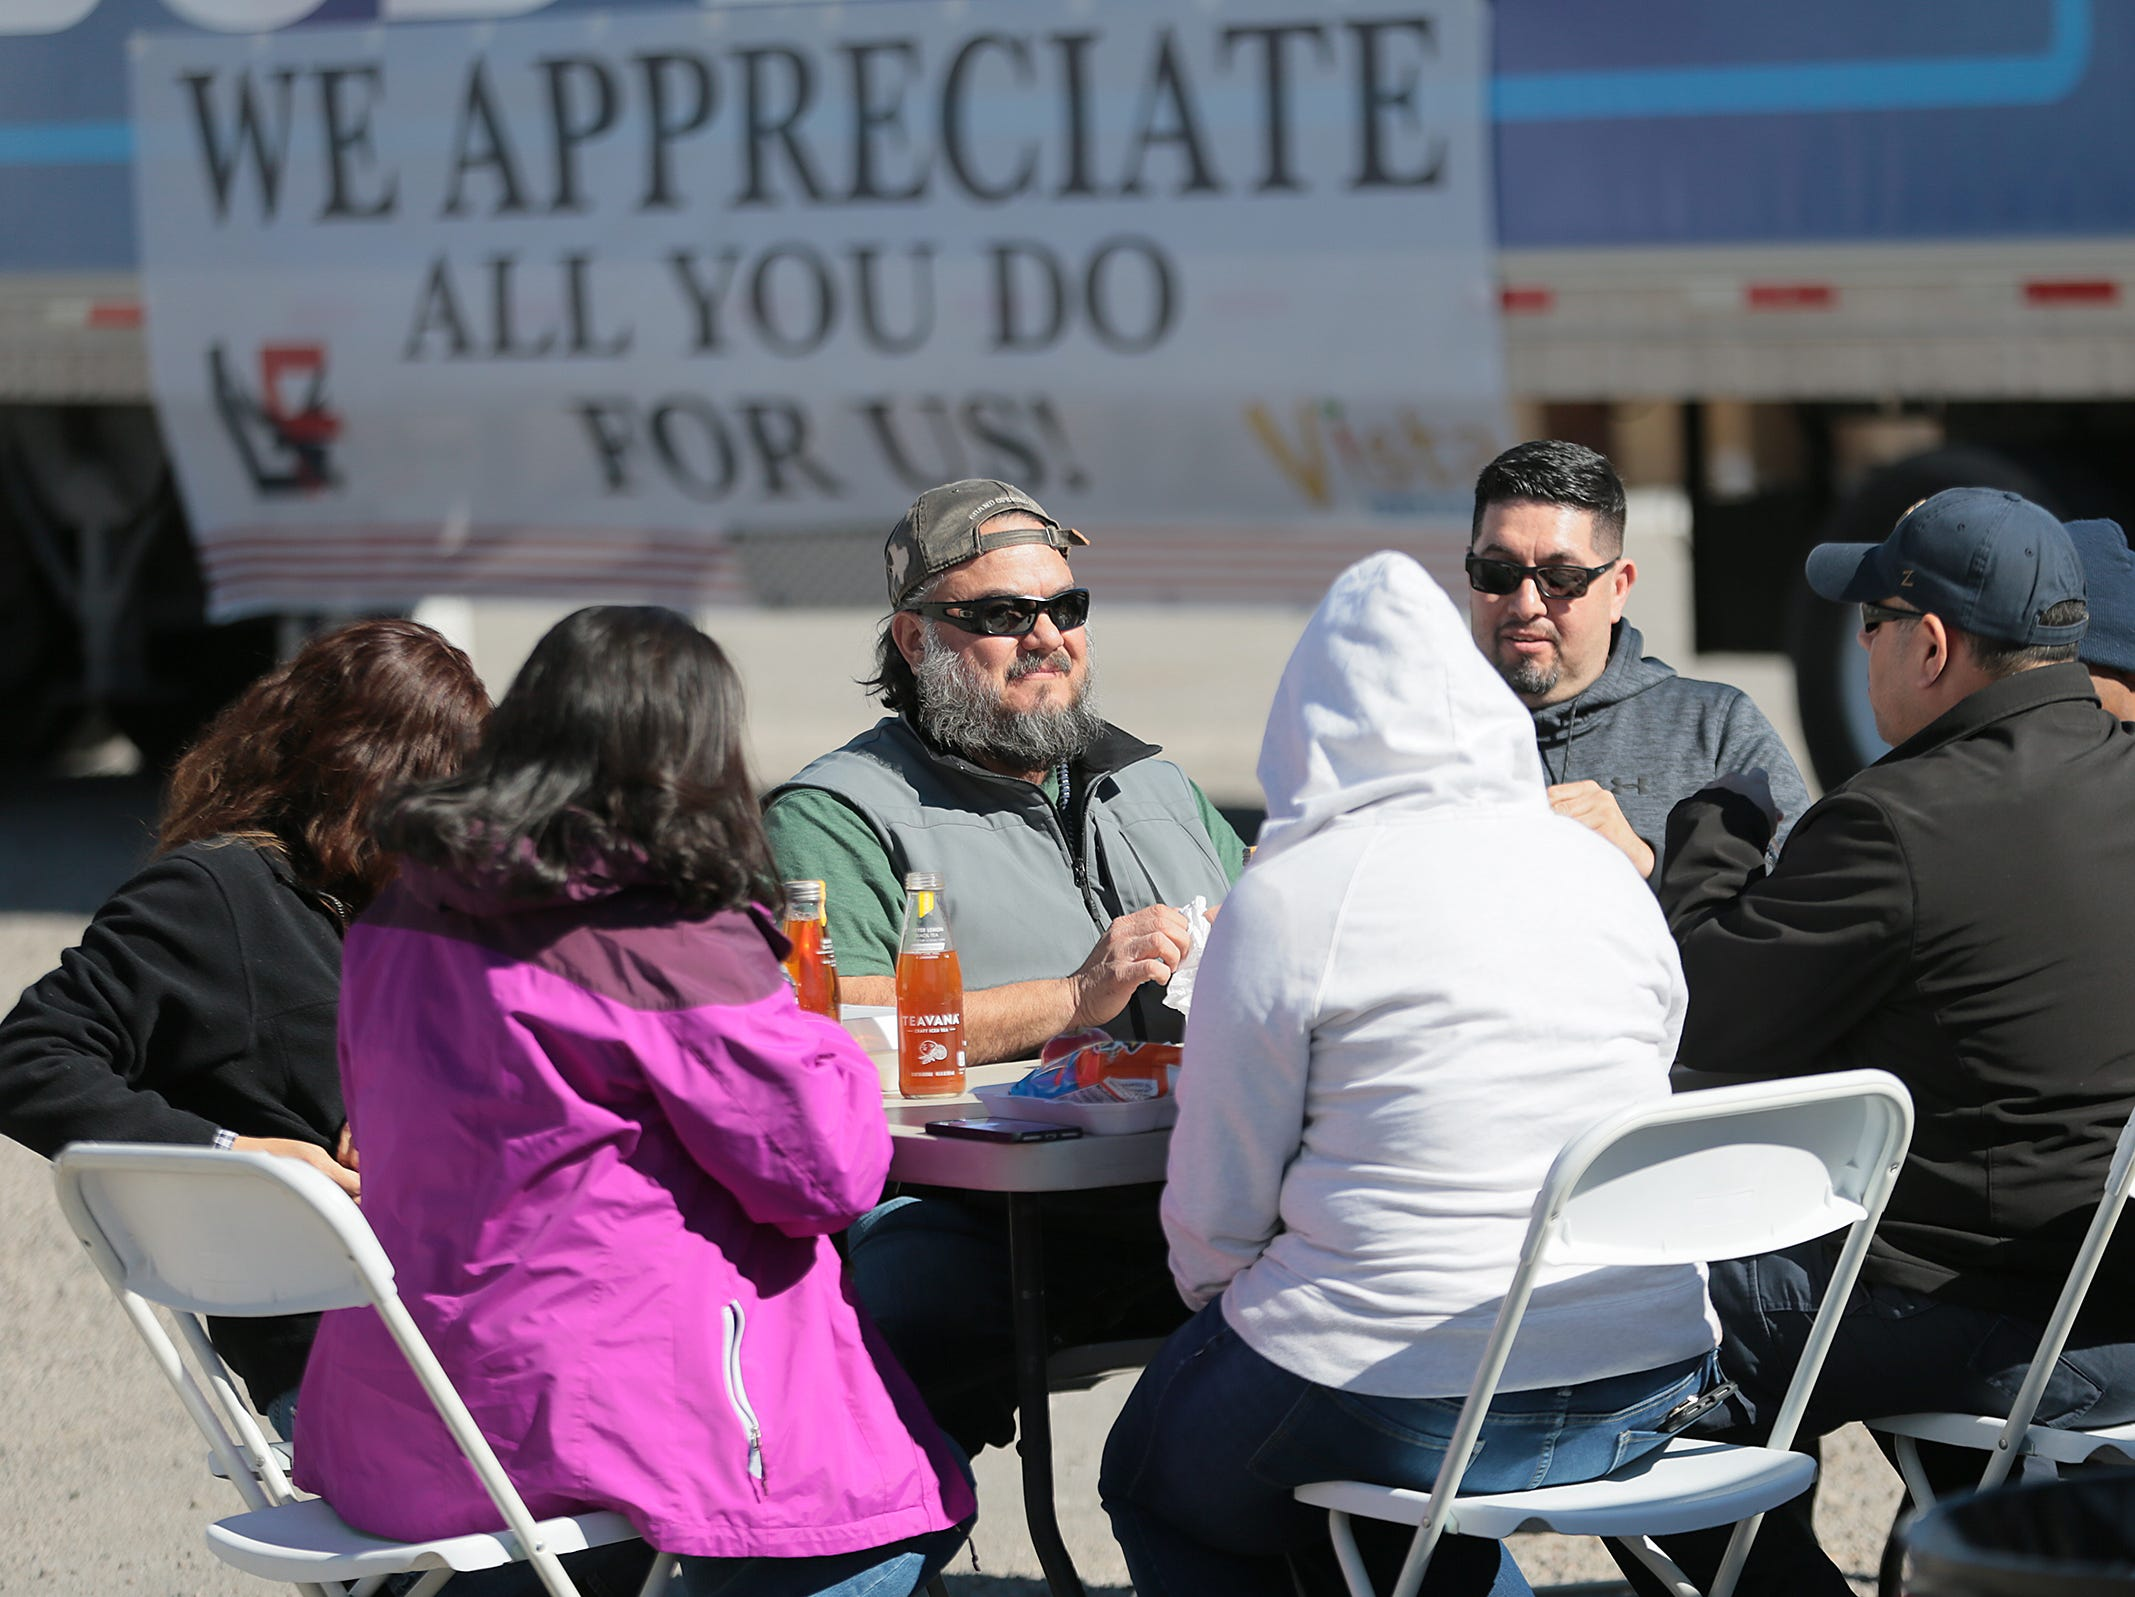 L&F Distributors and Vista Market teamed up to host a barbecue for furloughed federal workers Wednesday. Gift cards were also donated by Cabo Joe's, Pizza Hut and Wing Daddy's and raffled off at the event.